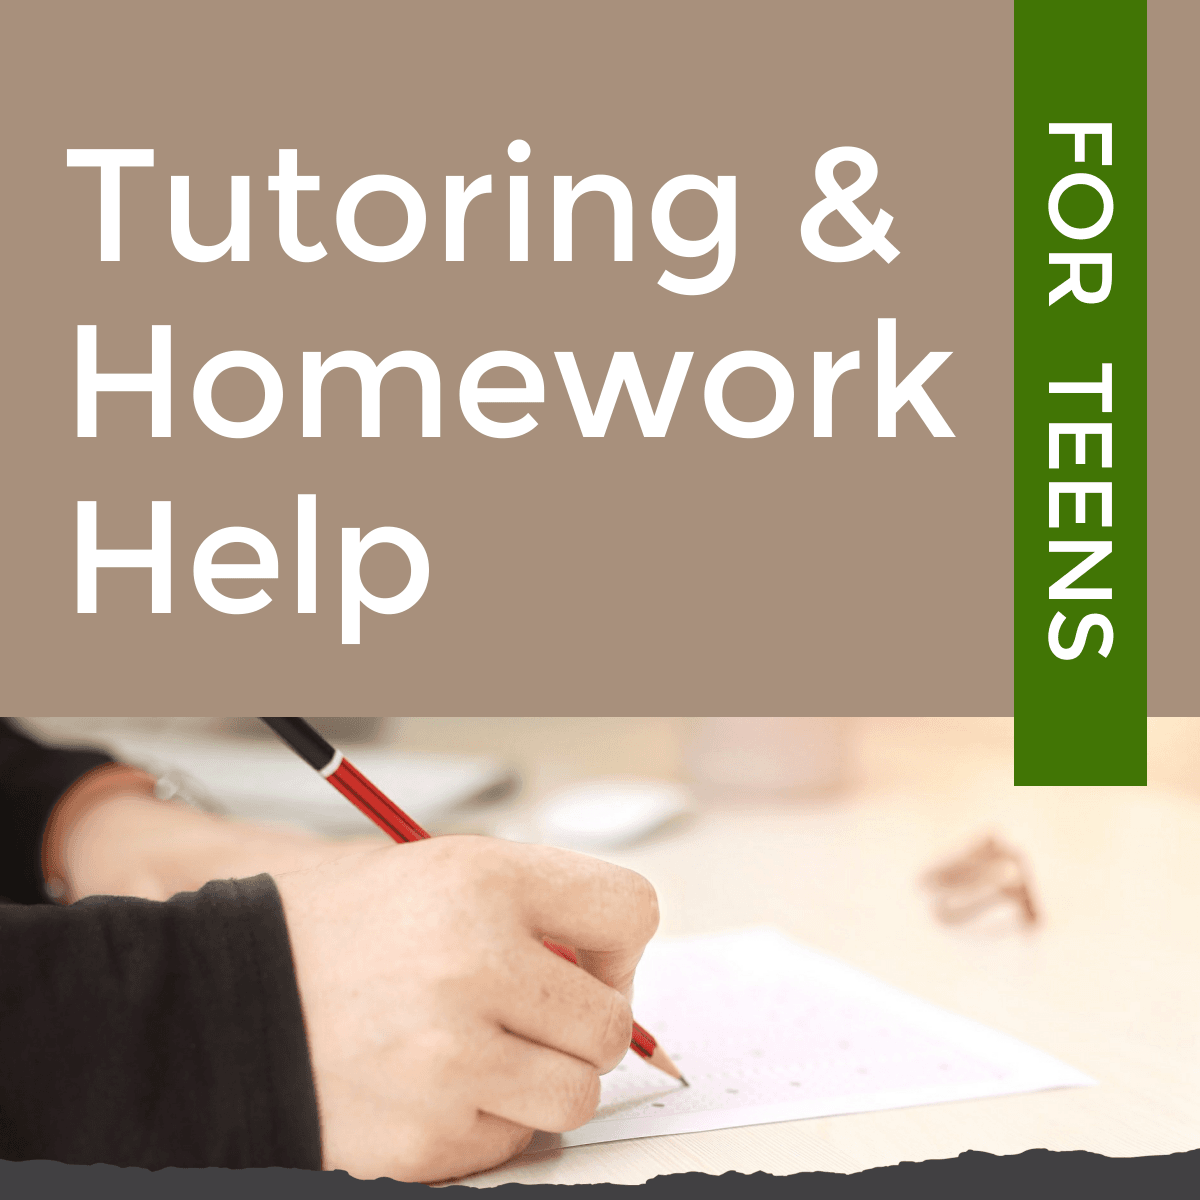 tutoring and homework help for teens